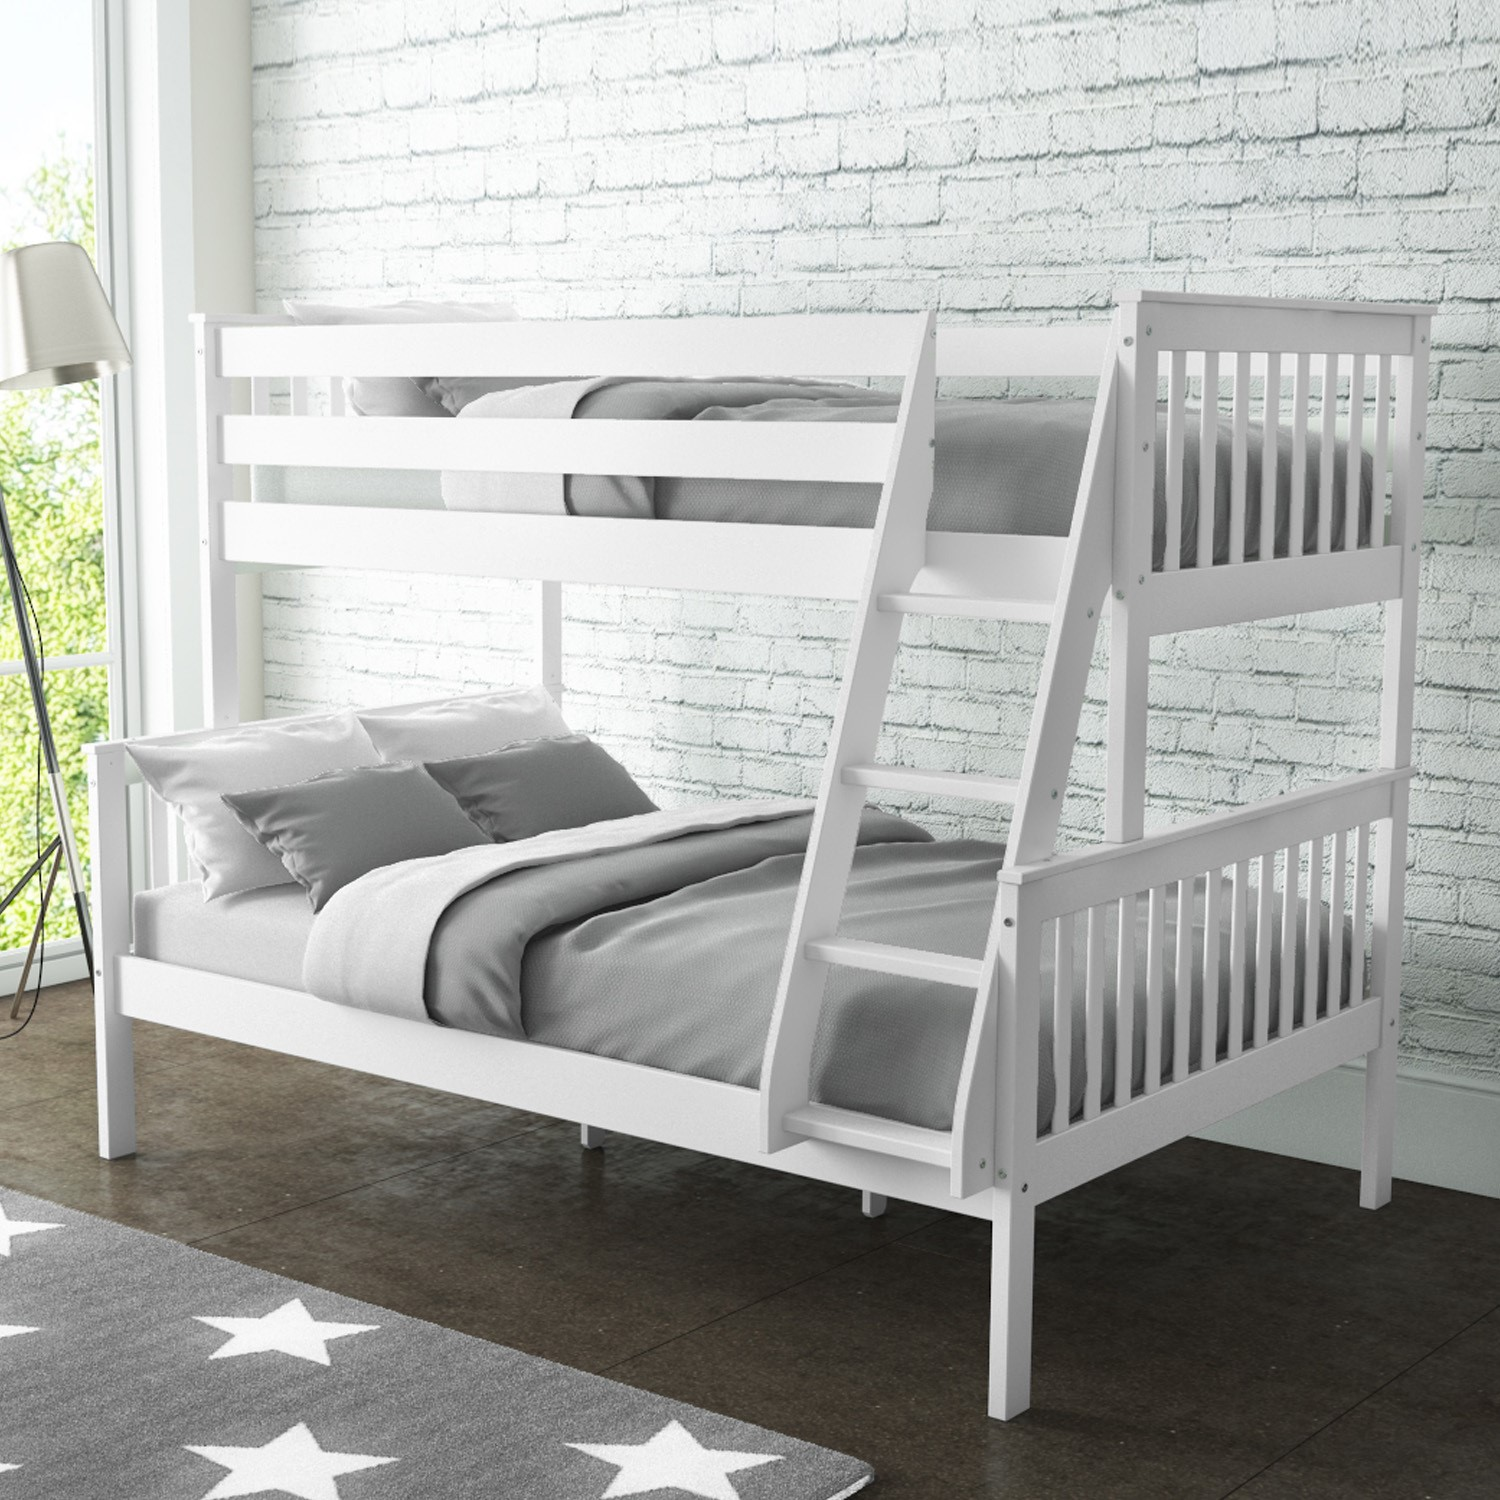 Incroyable Oxford Triple Bunk Bed In White   Small Double